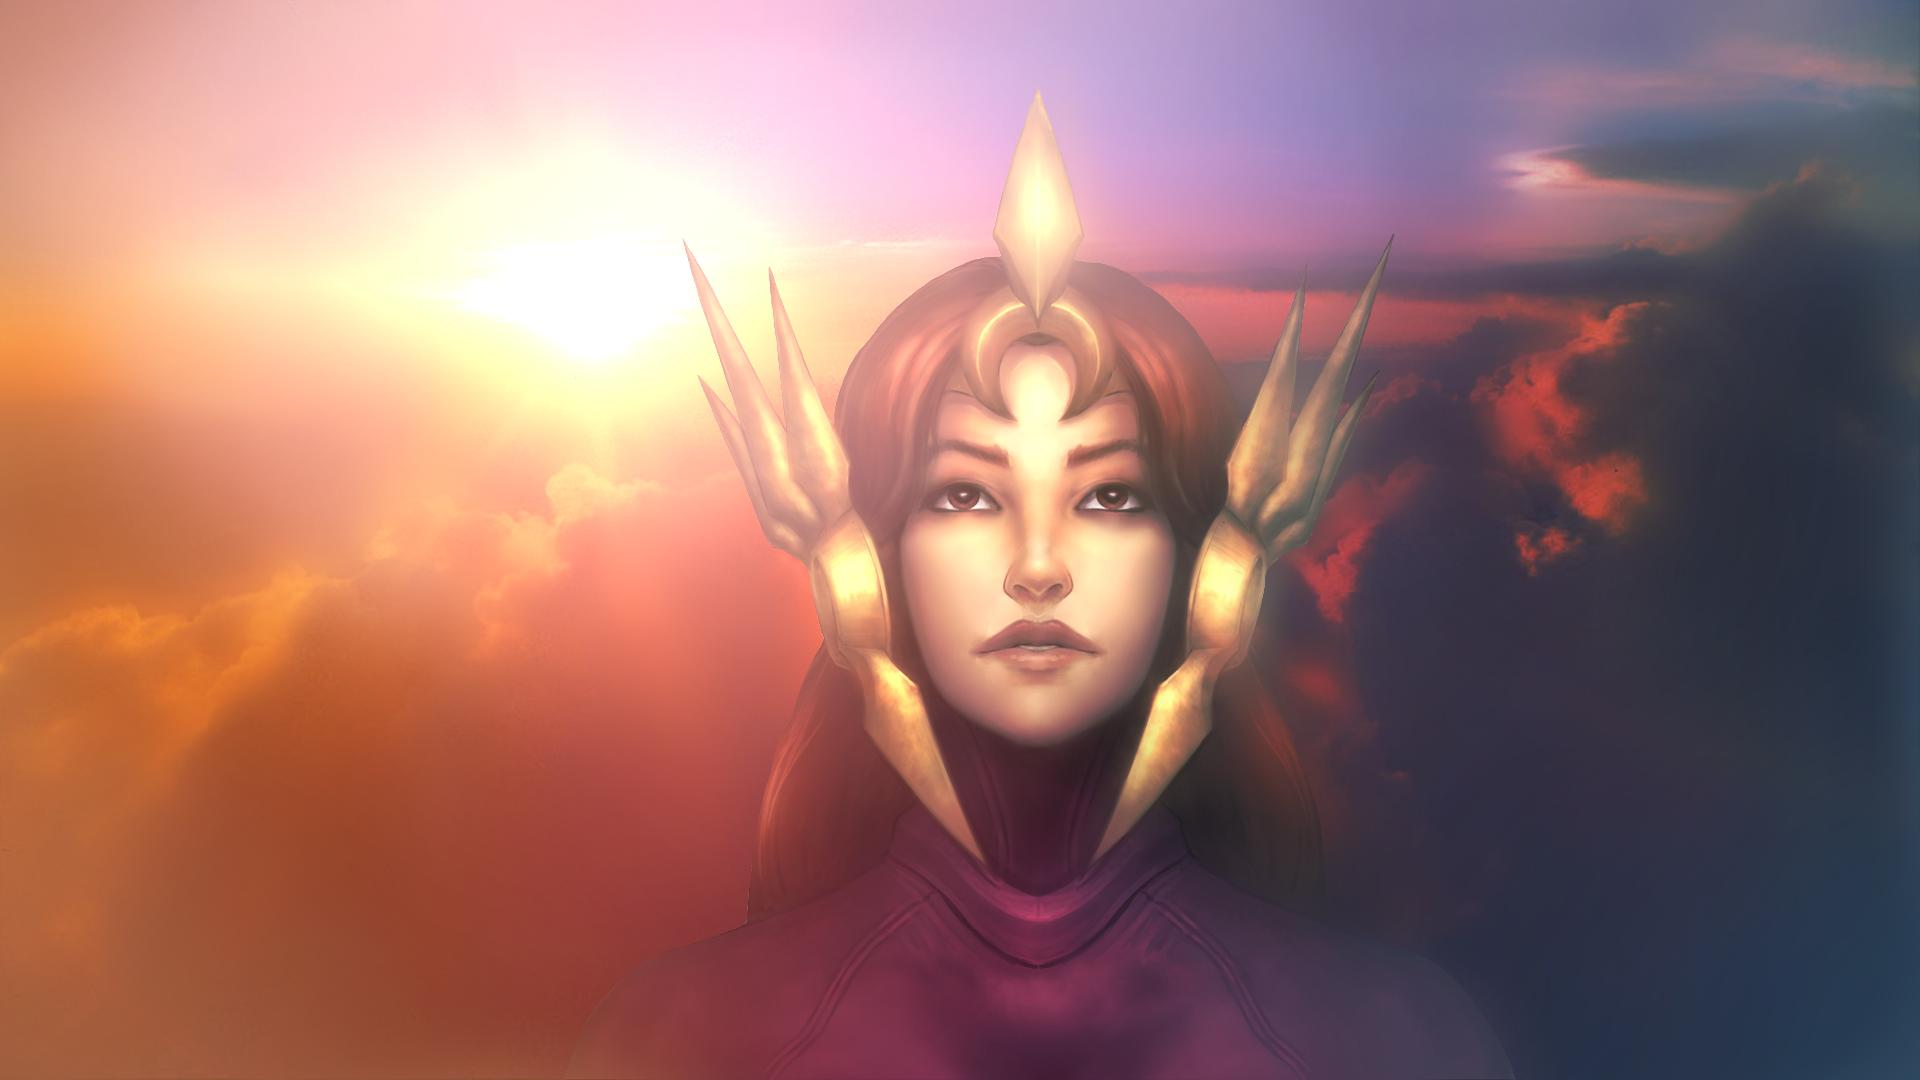 Leona League Of Legends Hd Wallpaper Hintergrund 1920x1080